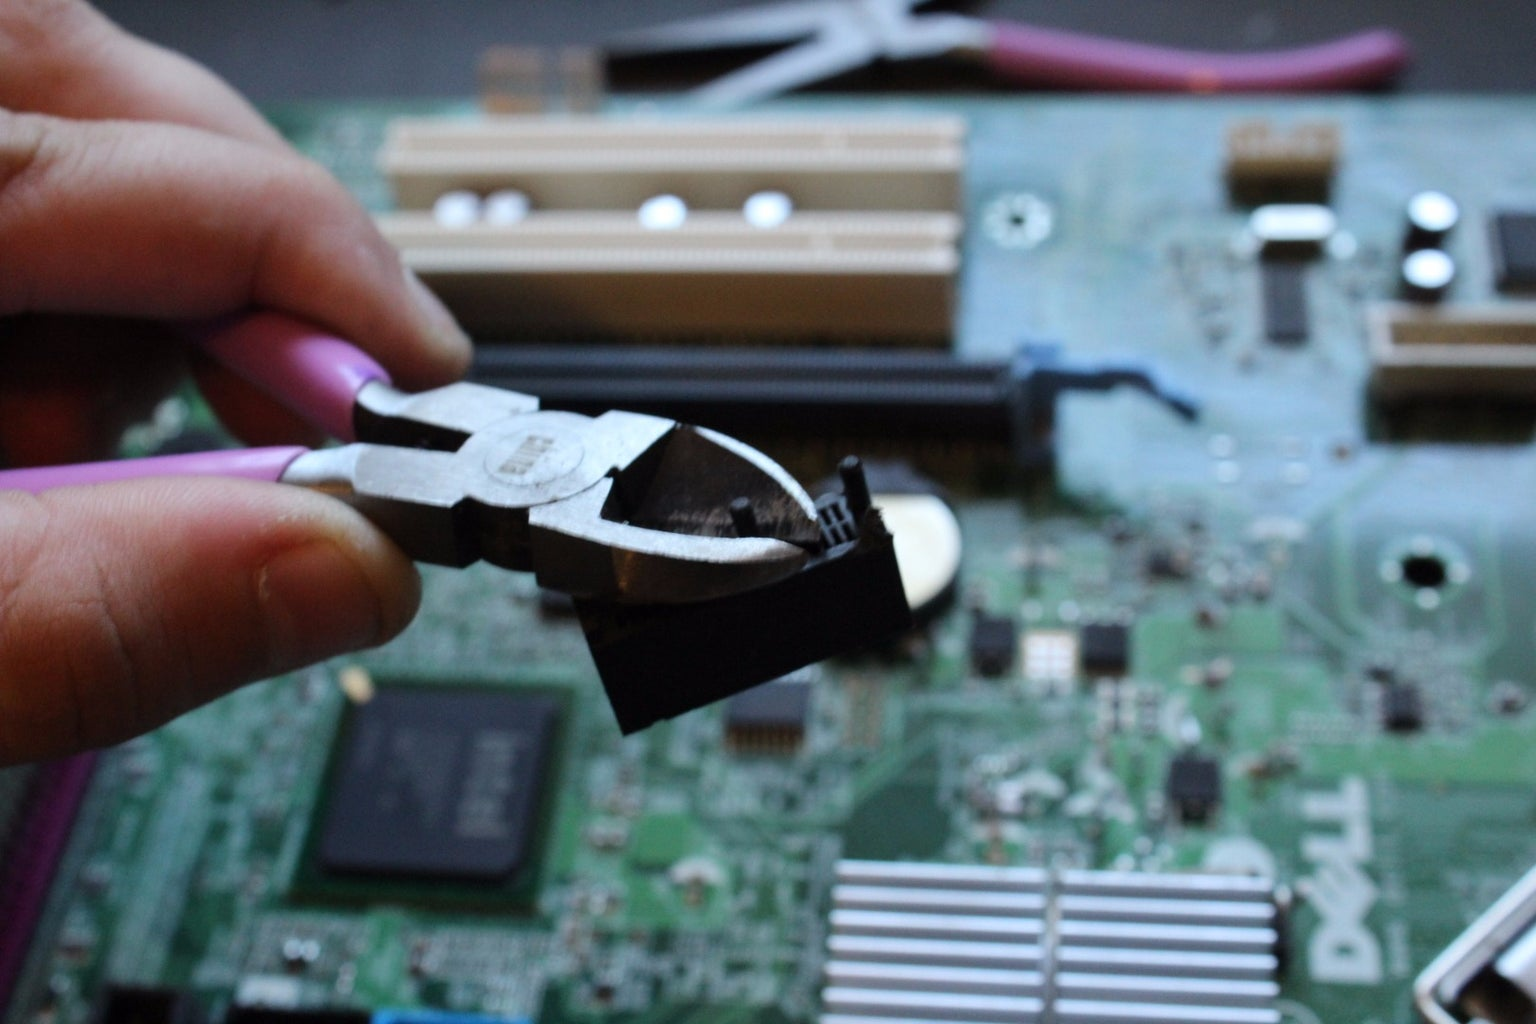 Disassembling Your Motherboard:  Removing Ports